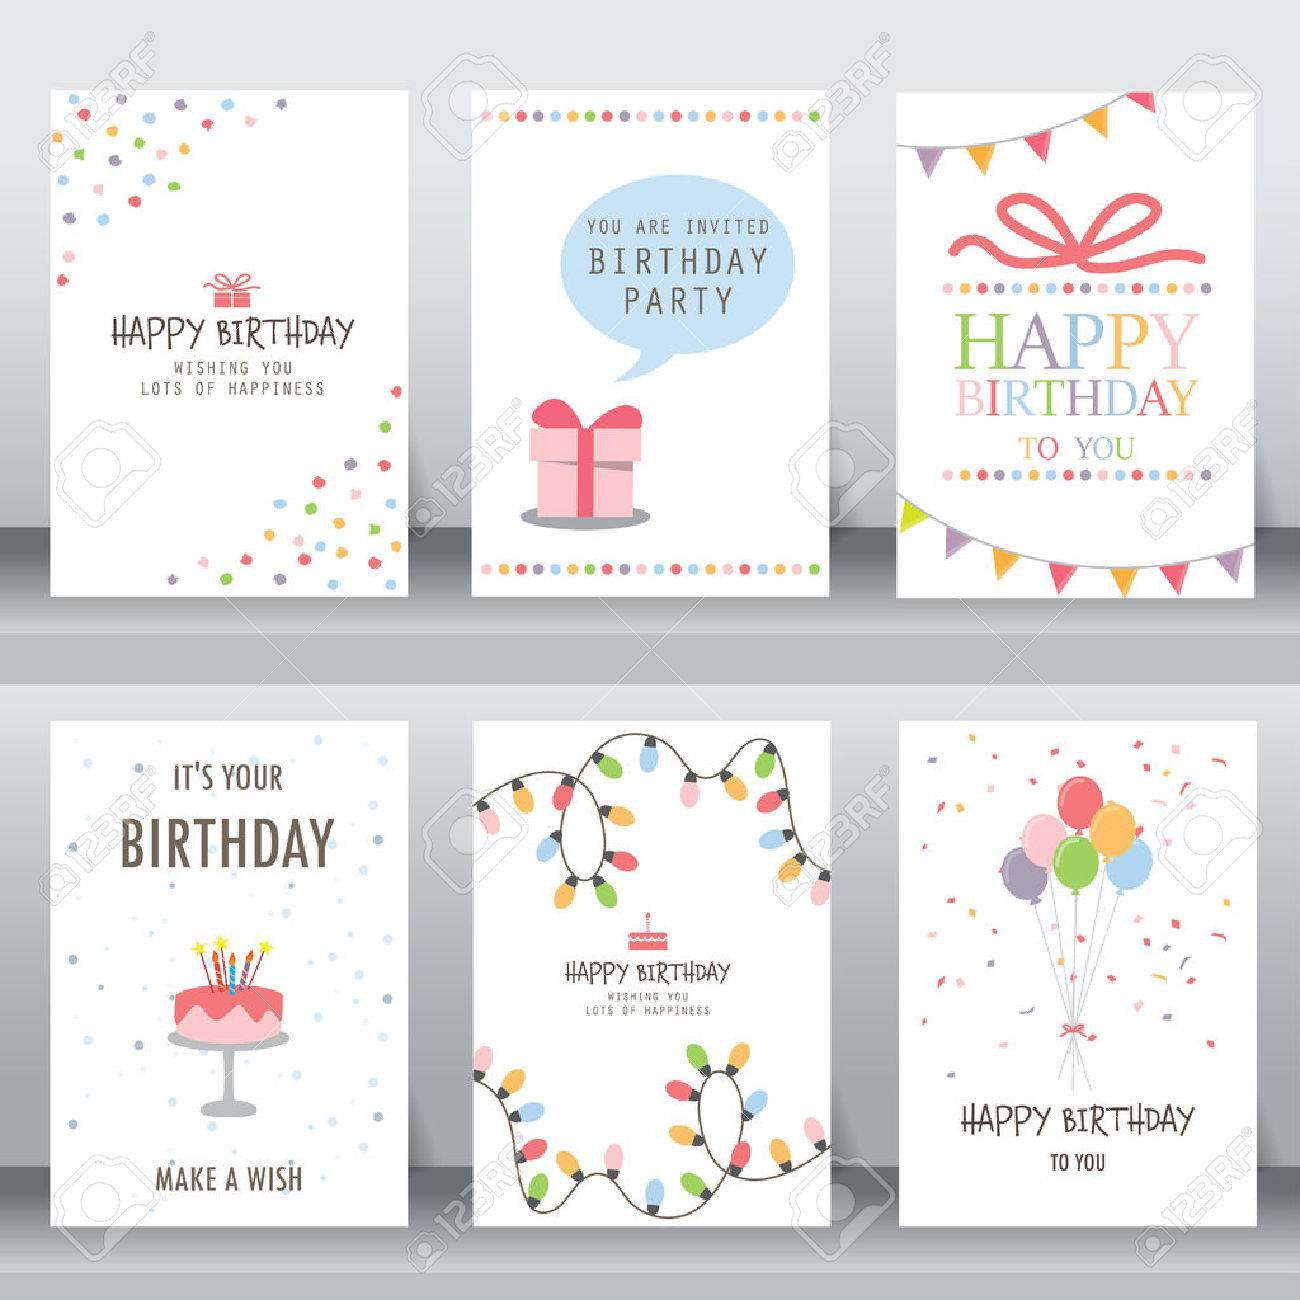 Happy Birthday Holiday Christmas Greeting And Invitation Card